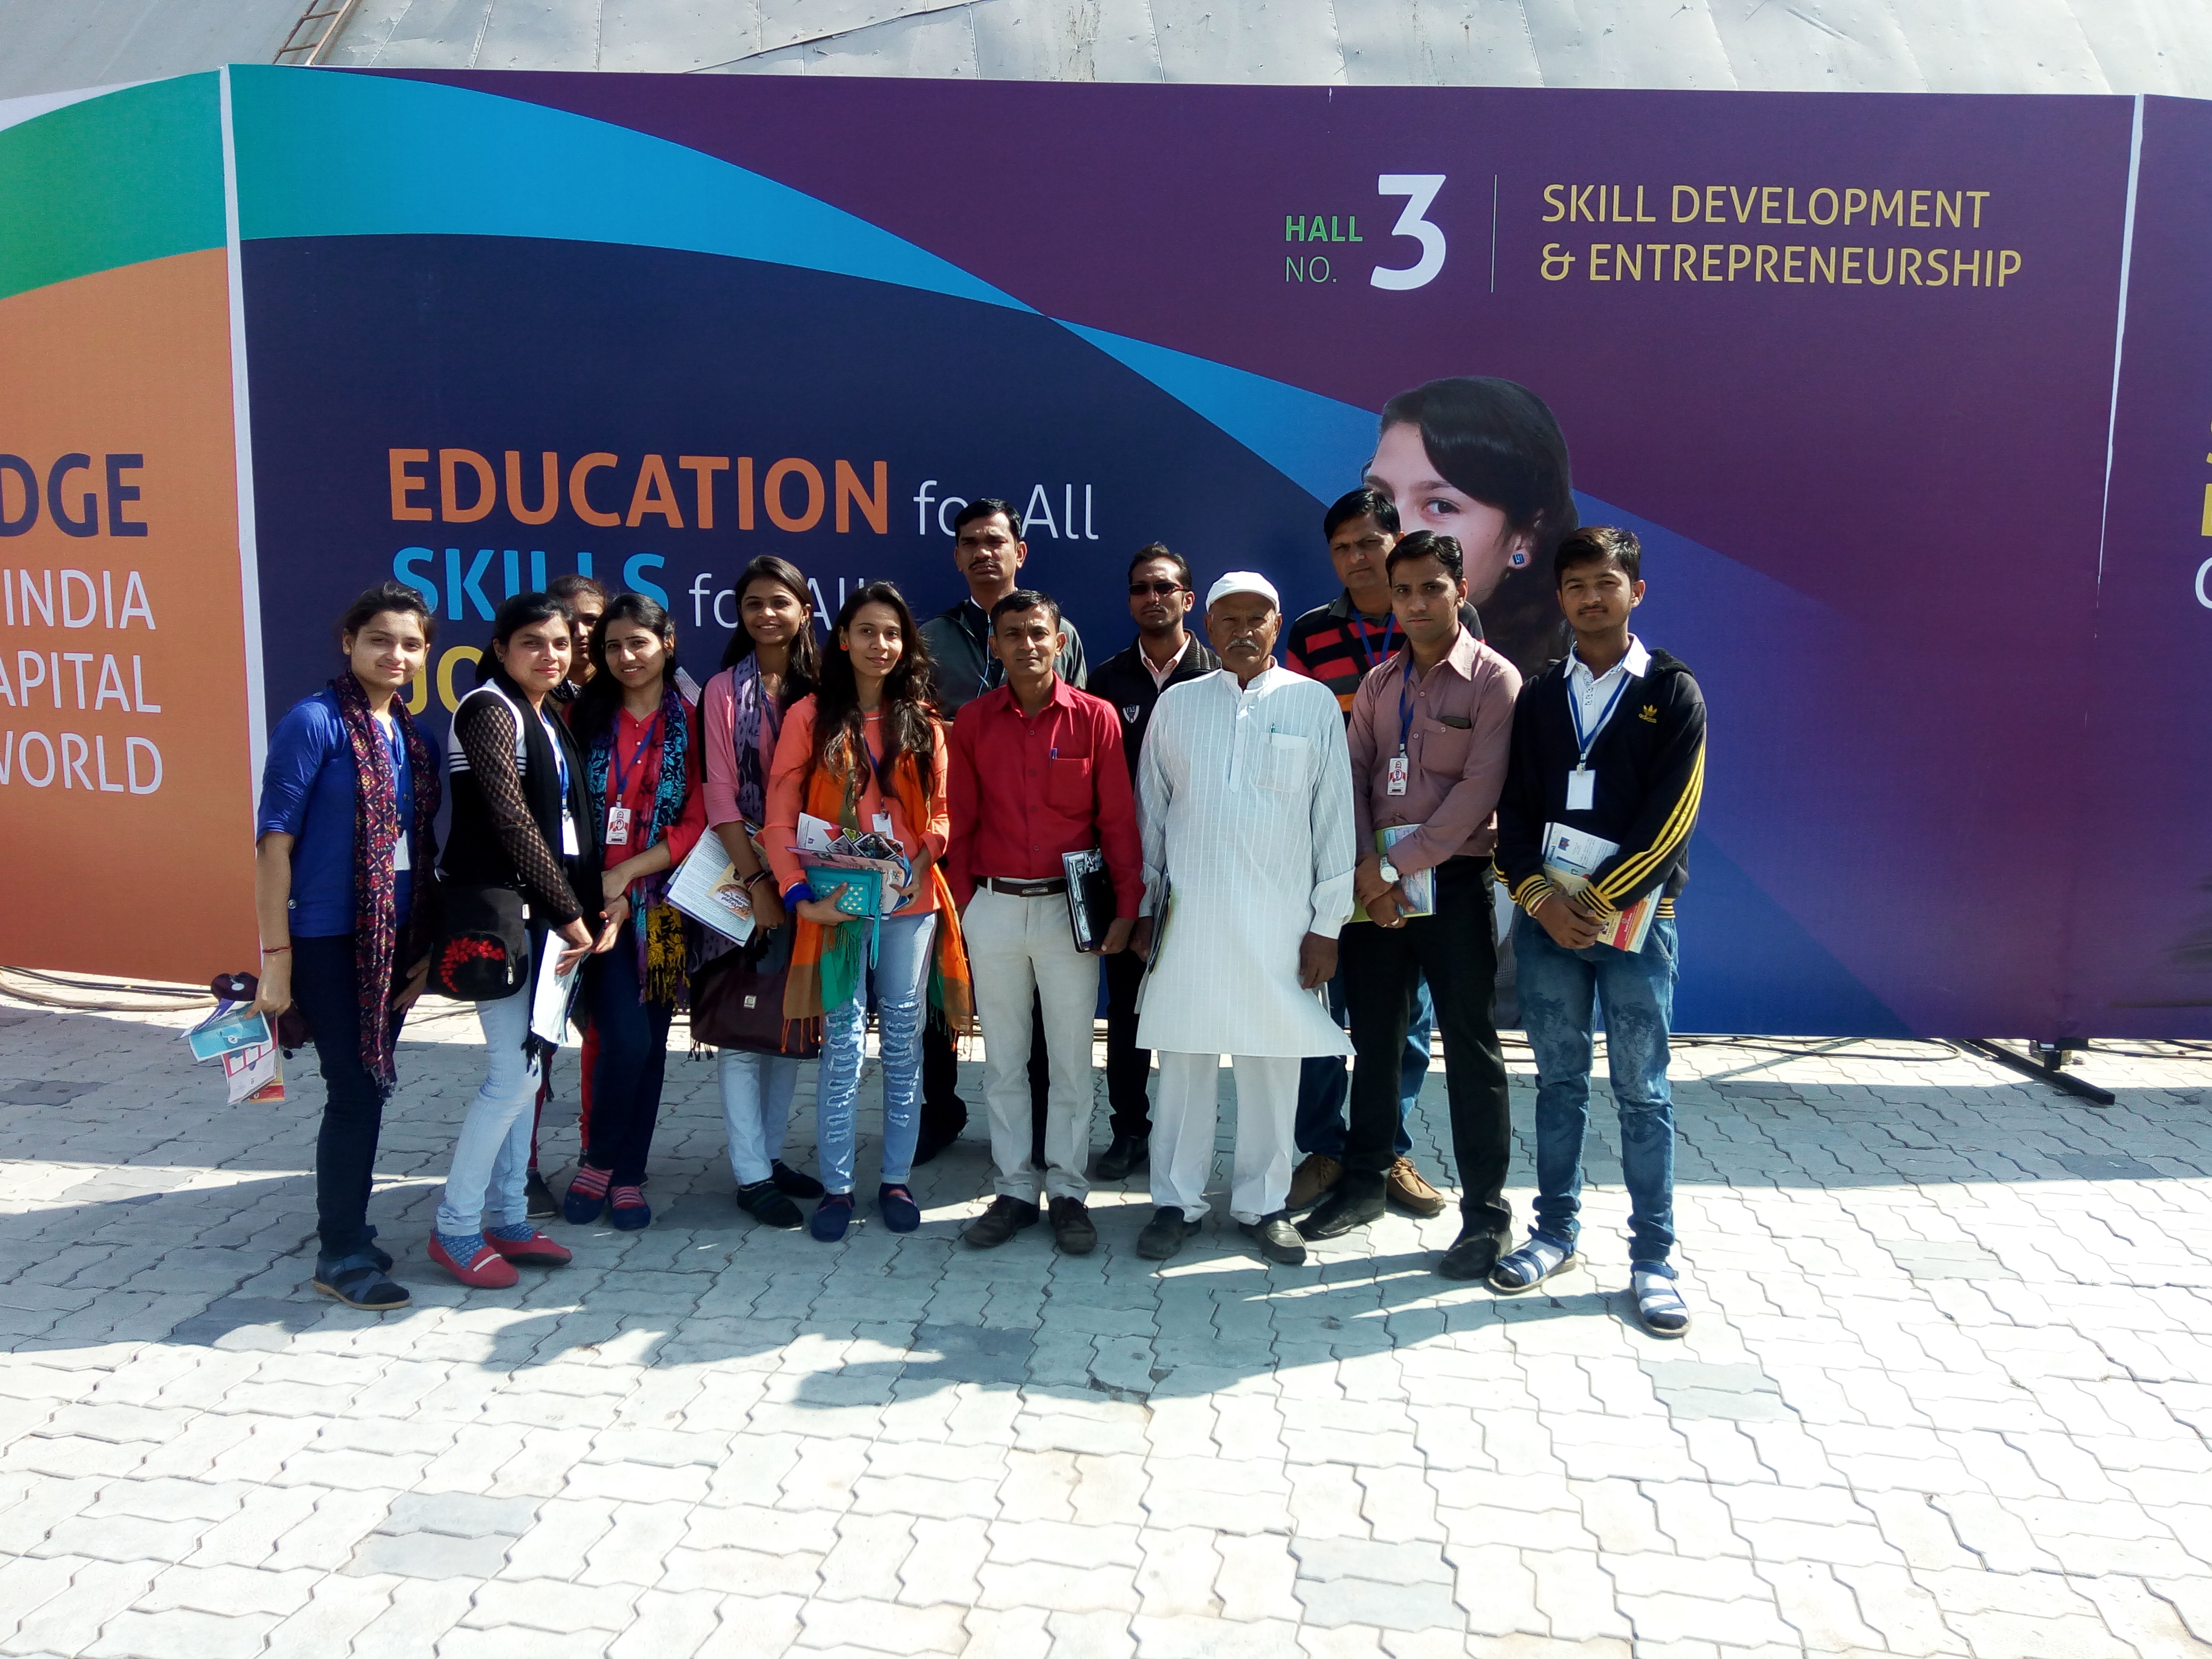 skill development enterpreneurship